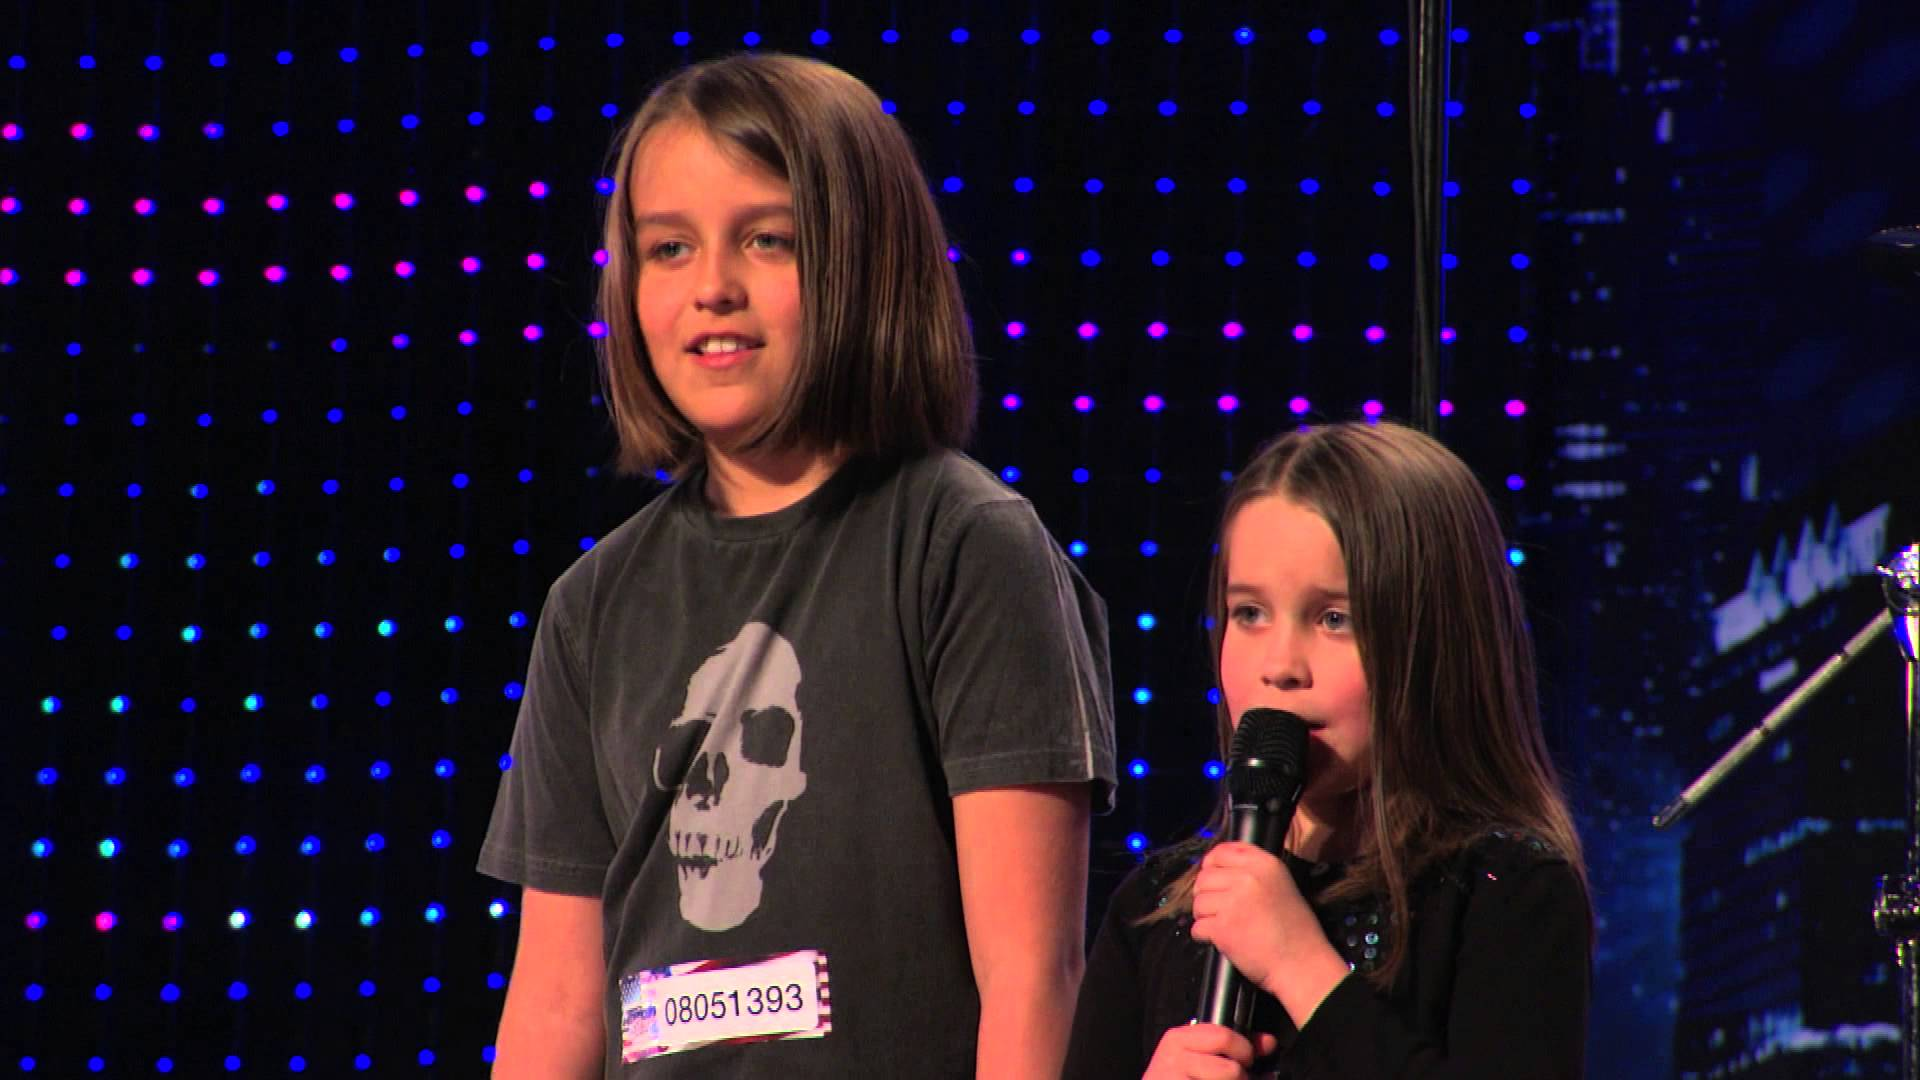 Sweet Little Girl Sings Death Metal Song Called 'Zombie Skin' on America's Got Talent